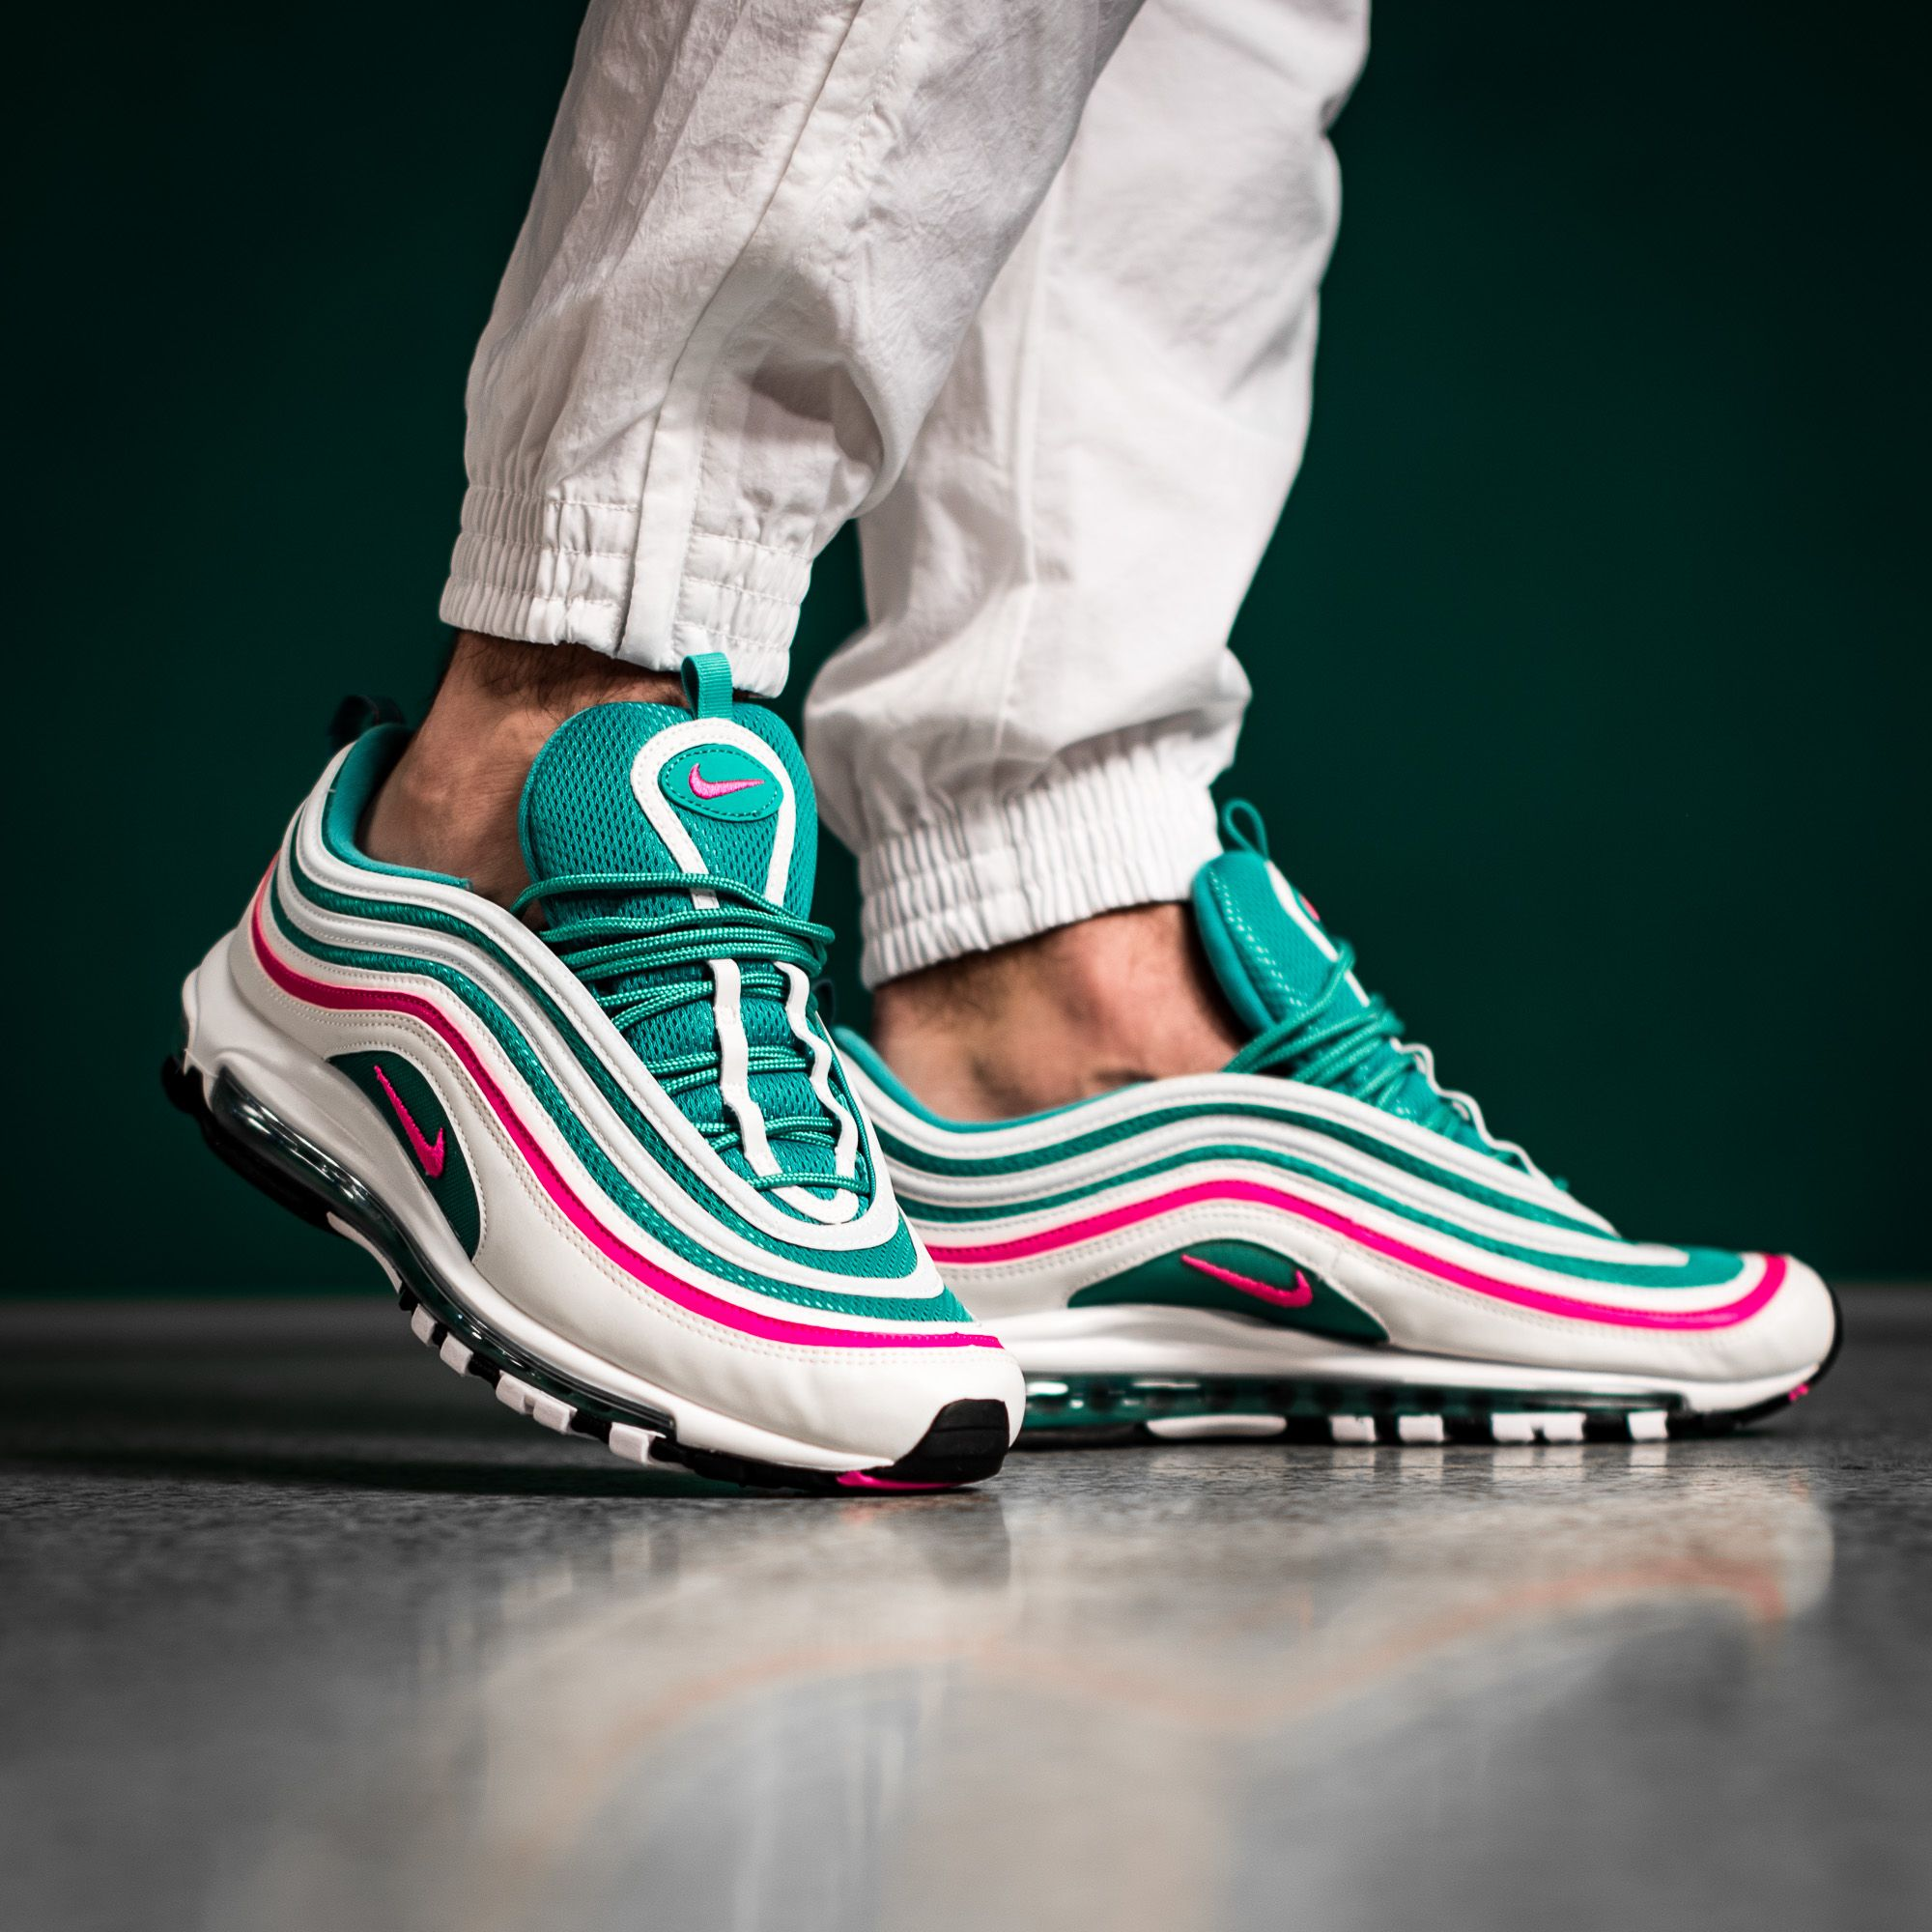 new concept 279b2 3bb5e Take your Talents to South Beach in this Nike Air Max 97. This upcoming